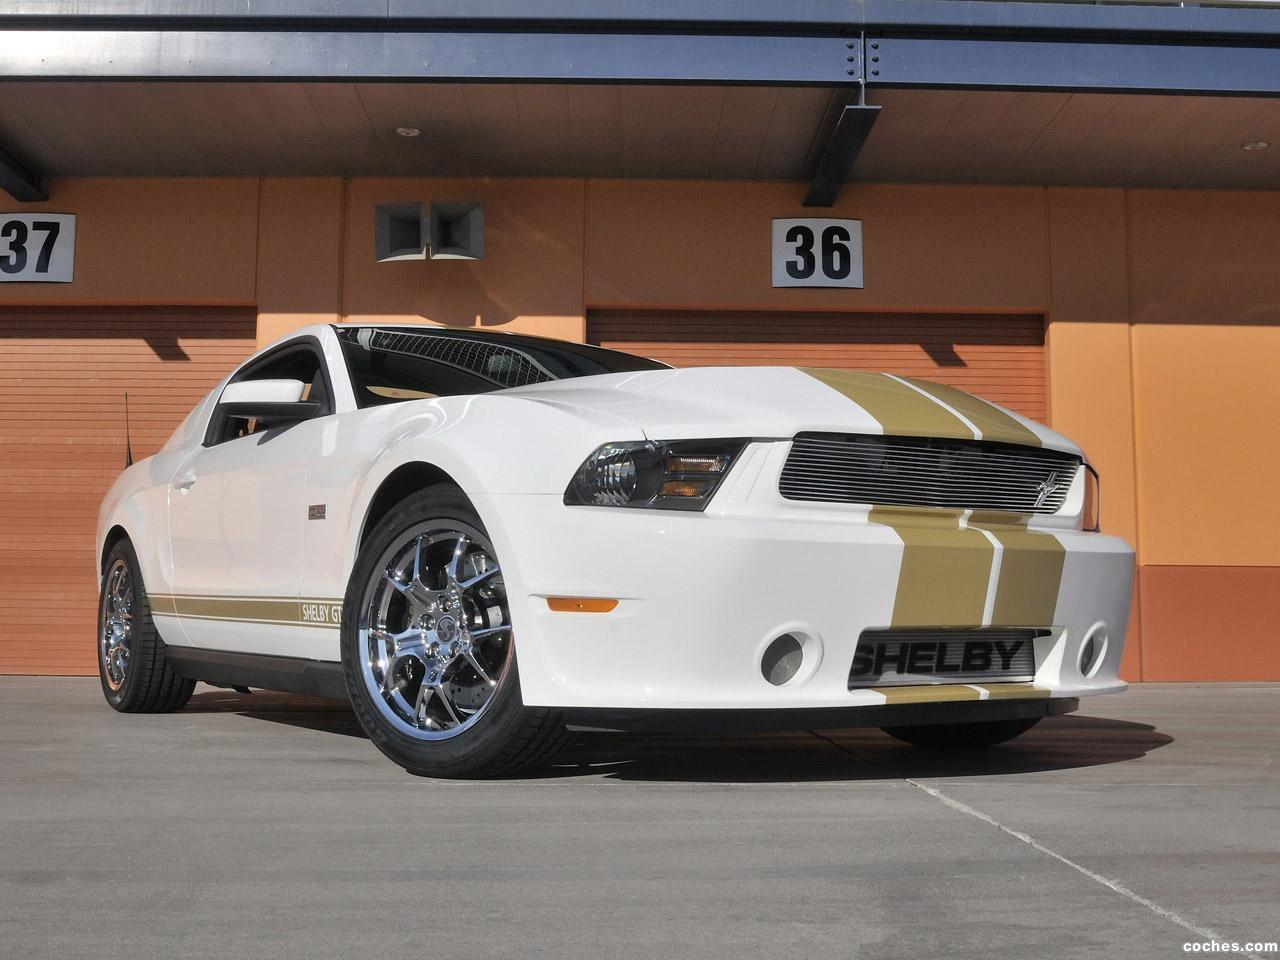 Foto 0 de Ford Shelby Mustang GTS 50th Anniversary 2012